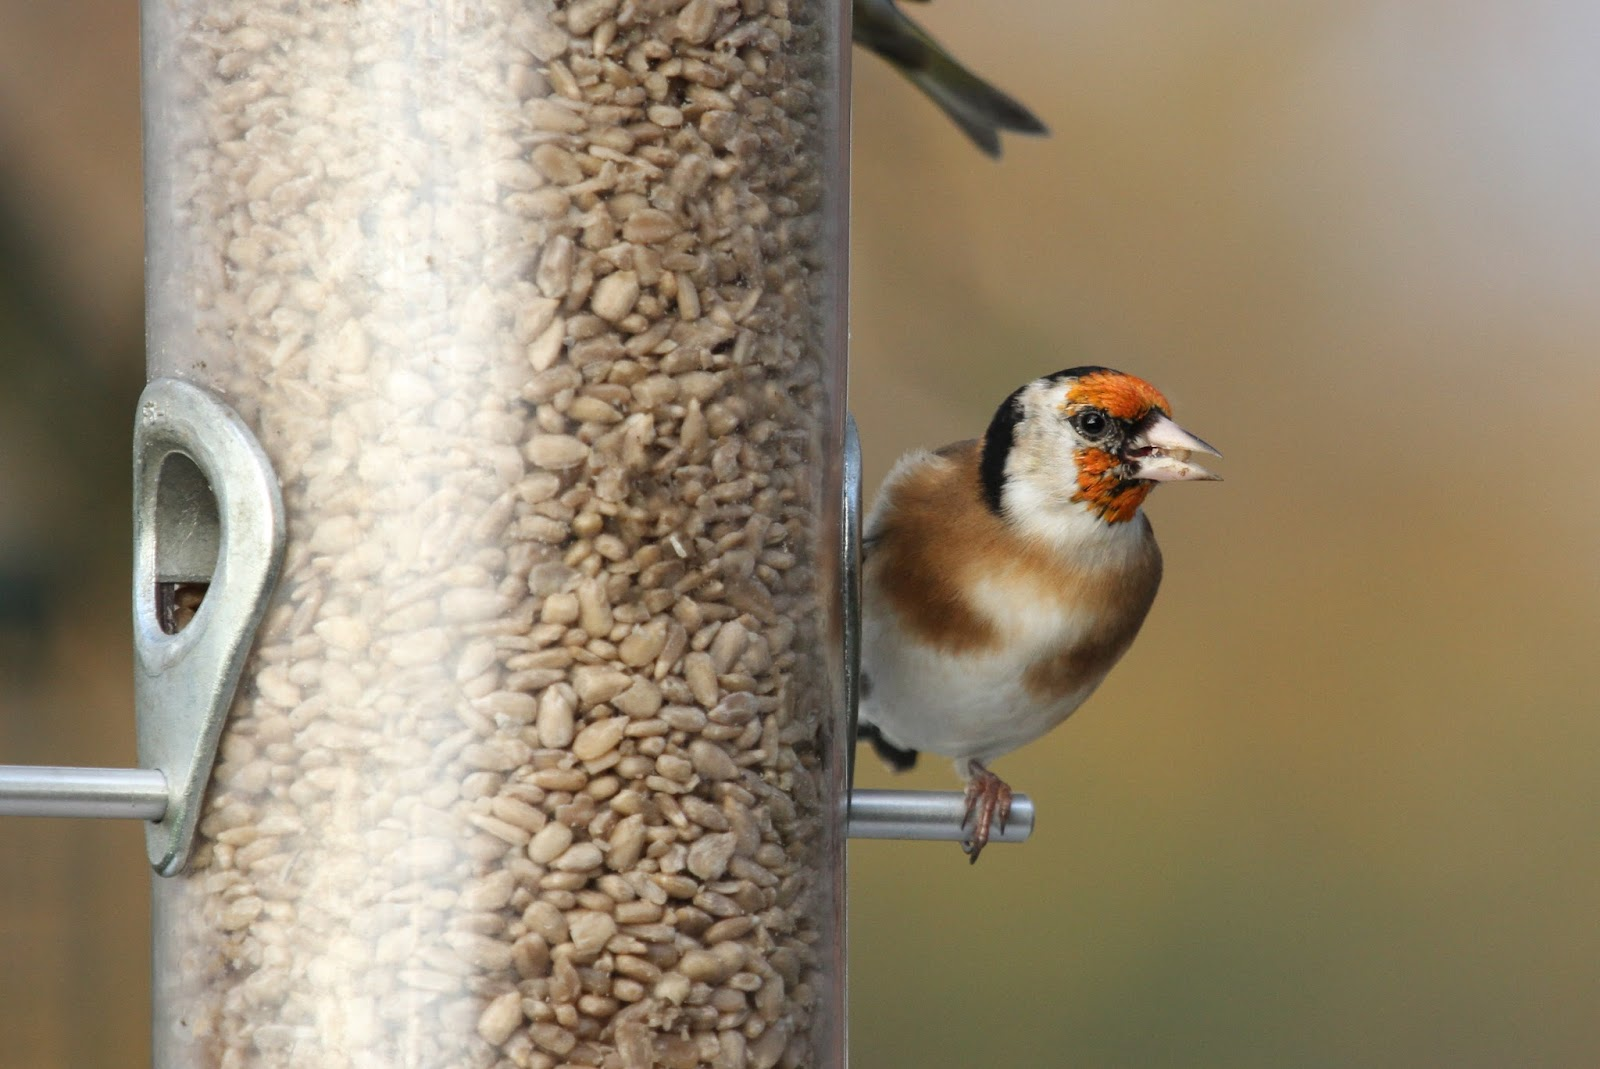 wilde about birds goldfinch survey charming to eat you